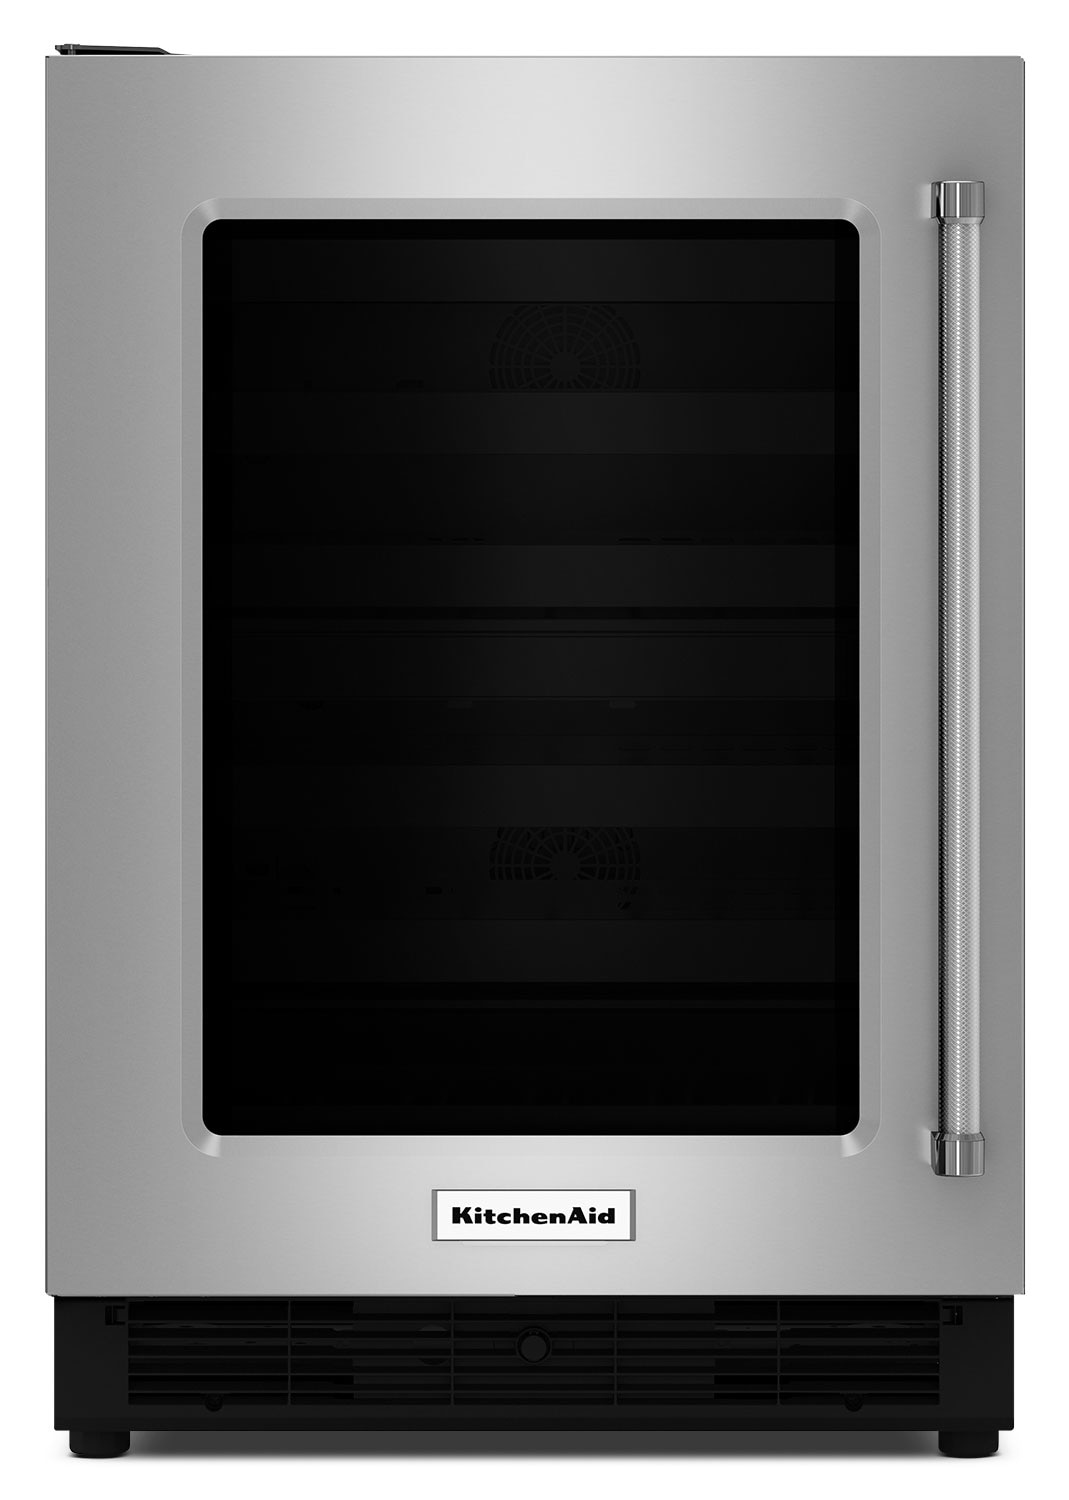 KitchenAid 5.1 Cu. Ft. Glass-Door Undercounter Refrigerator with Left-Door Swing – Stainless Steel